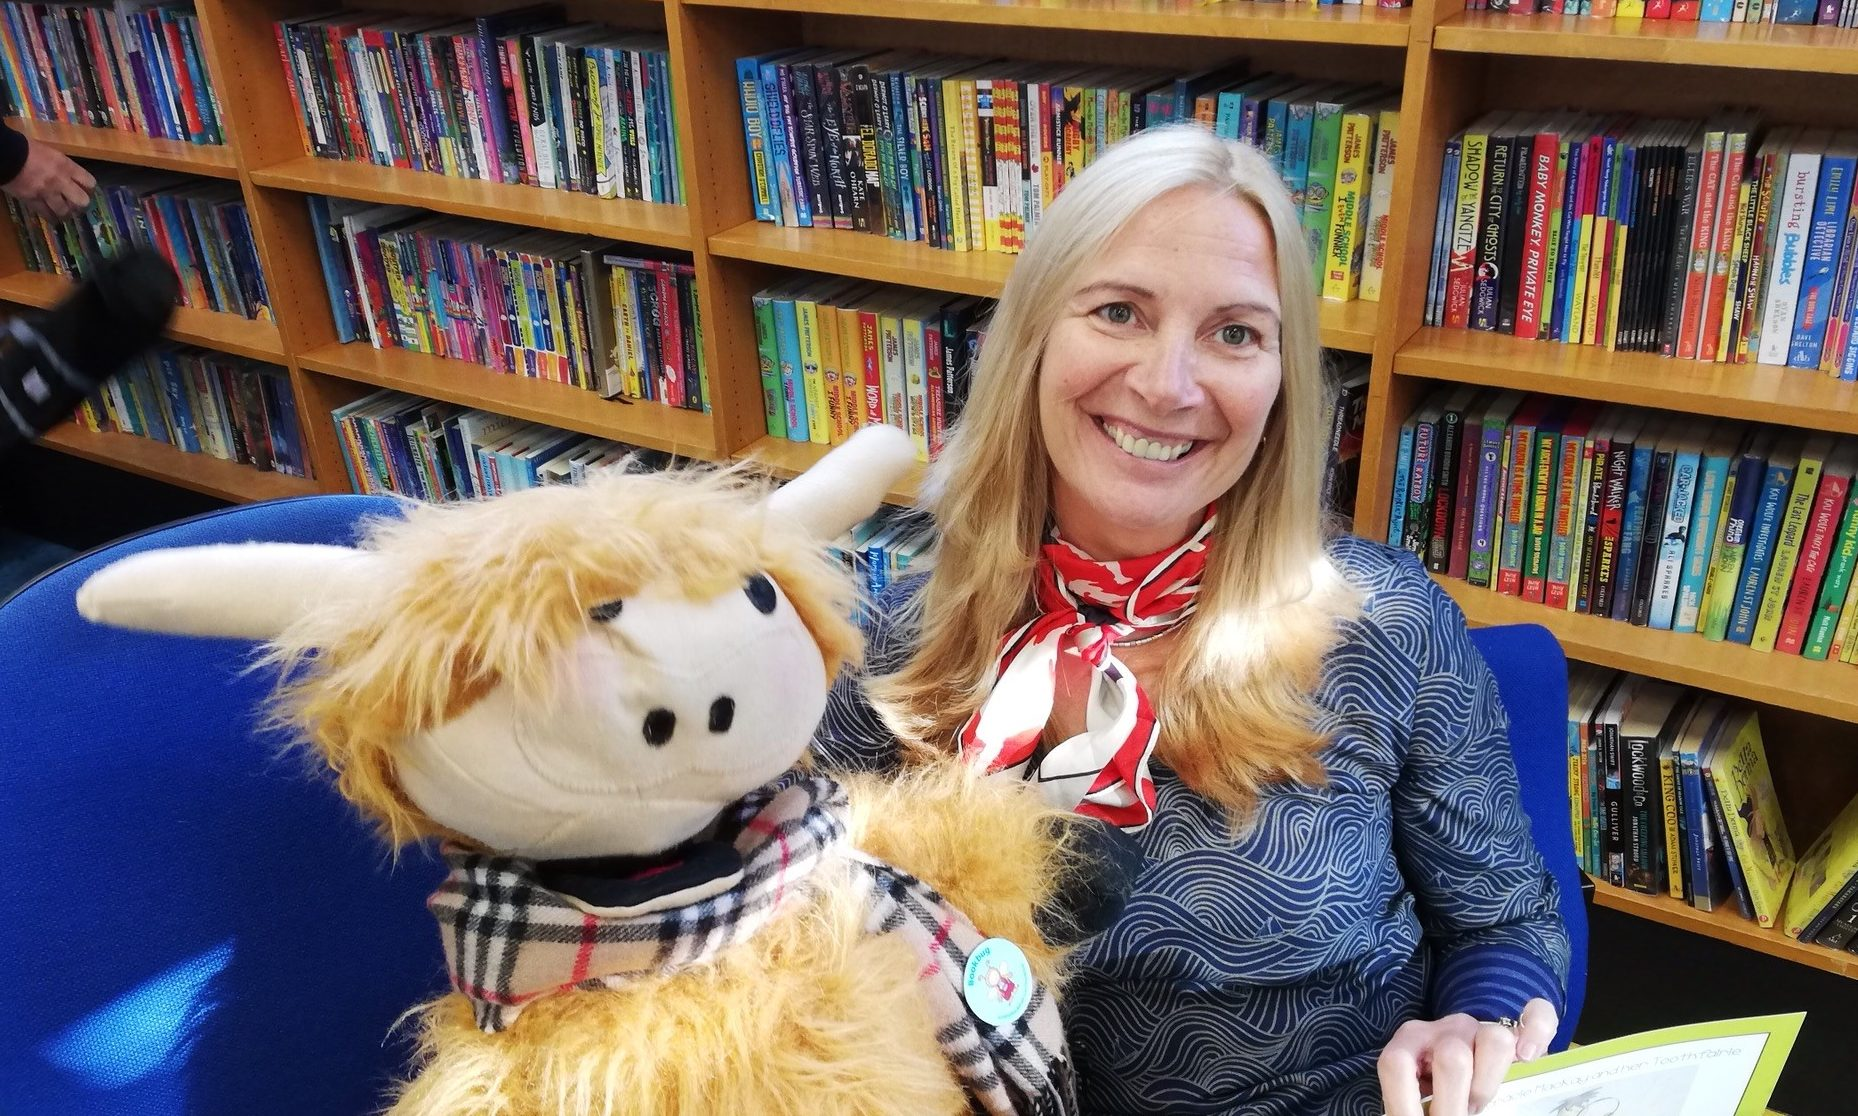 Children's author and illustrator Mandy E Rush